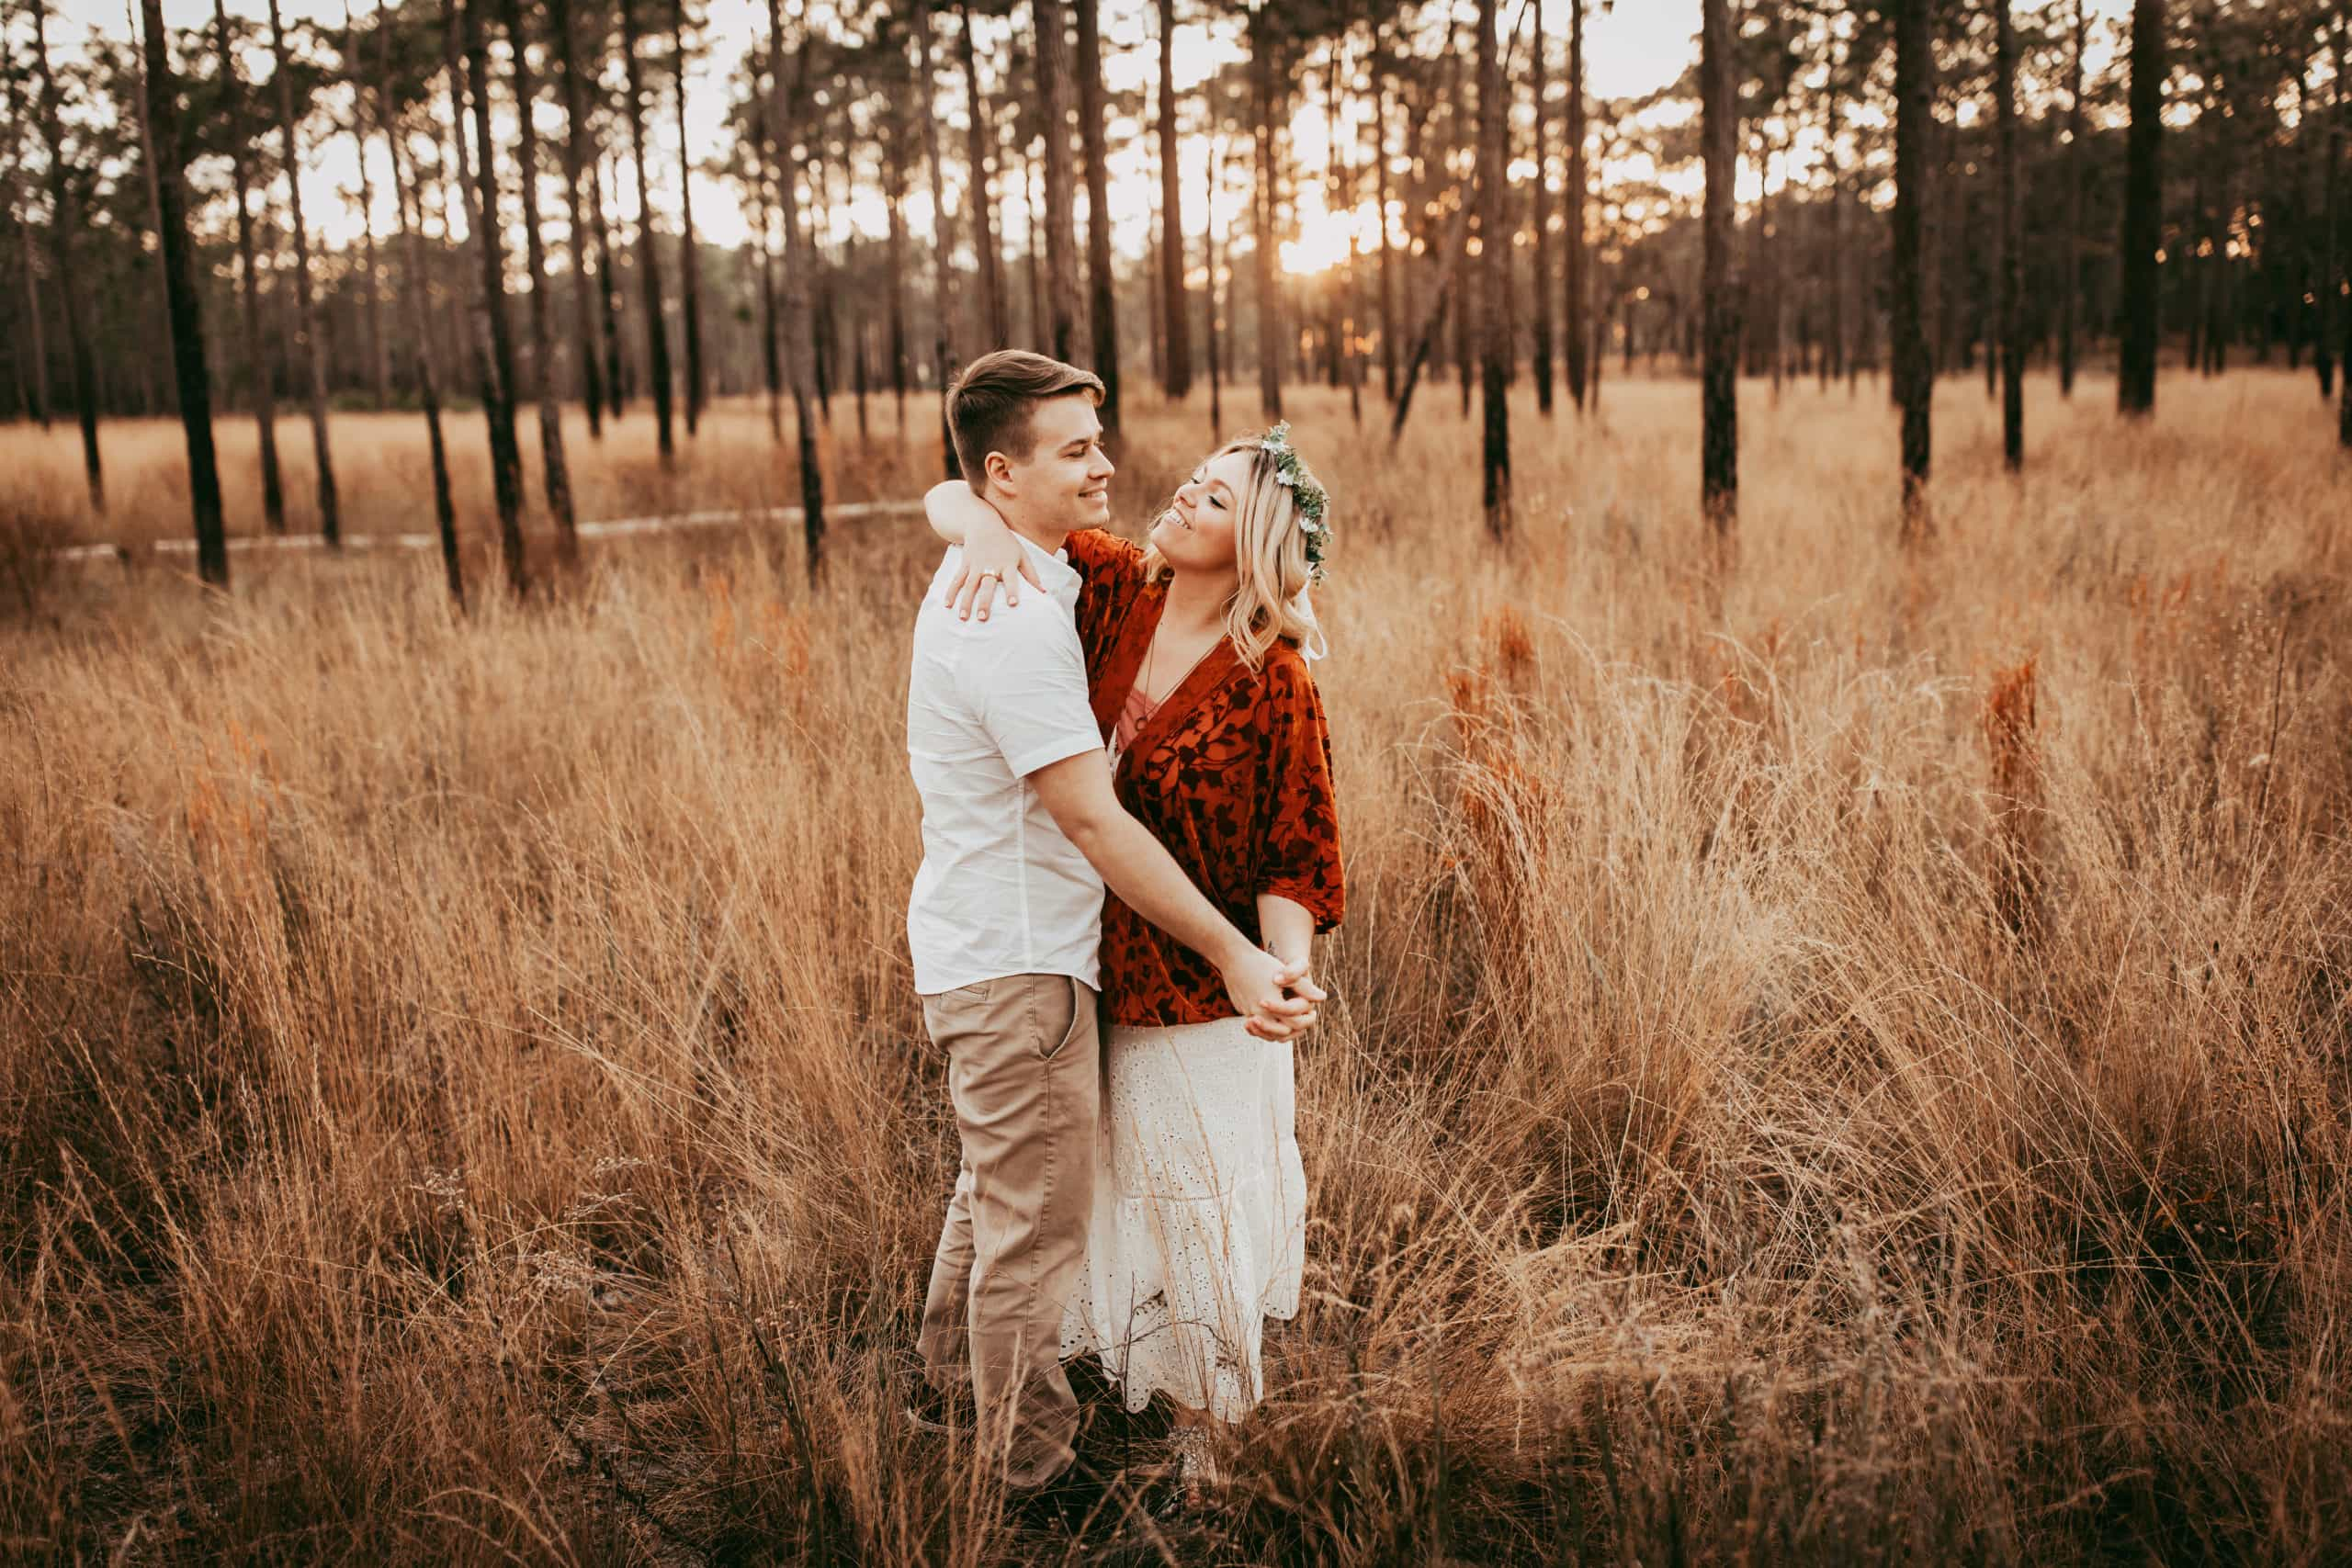 Orlando Couples Photography, couple dancing together in tall grass field